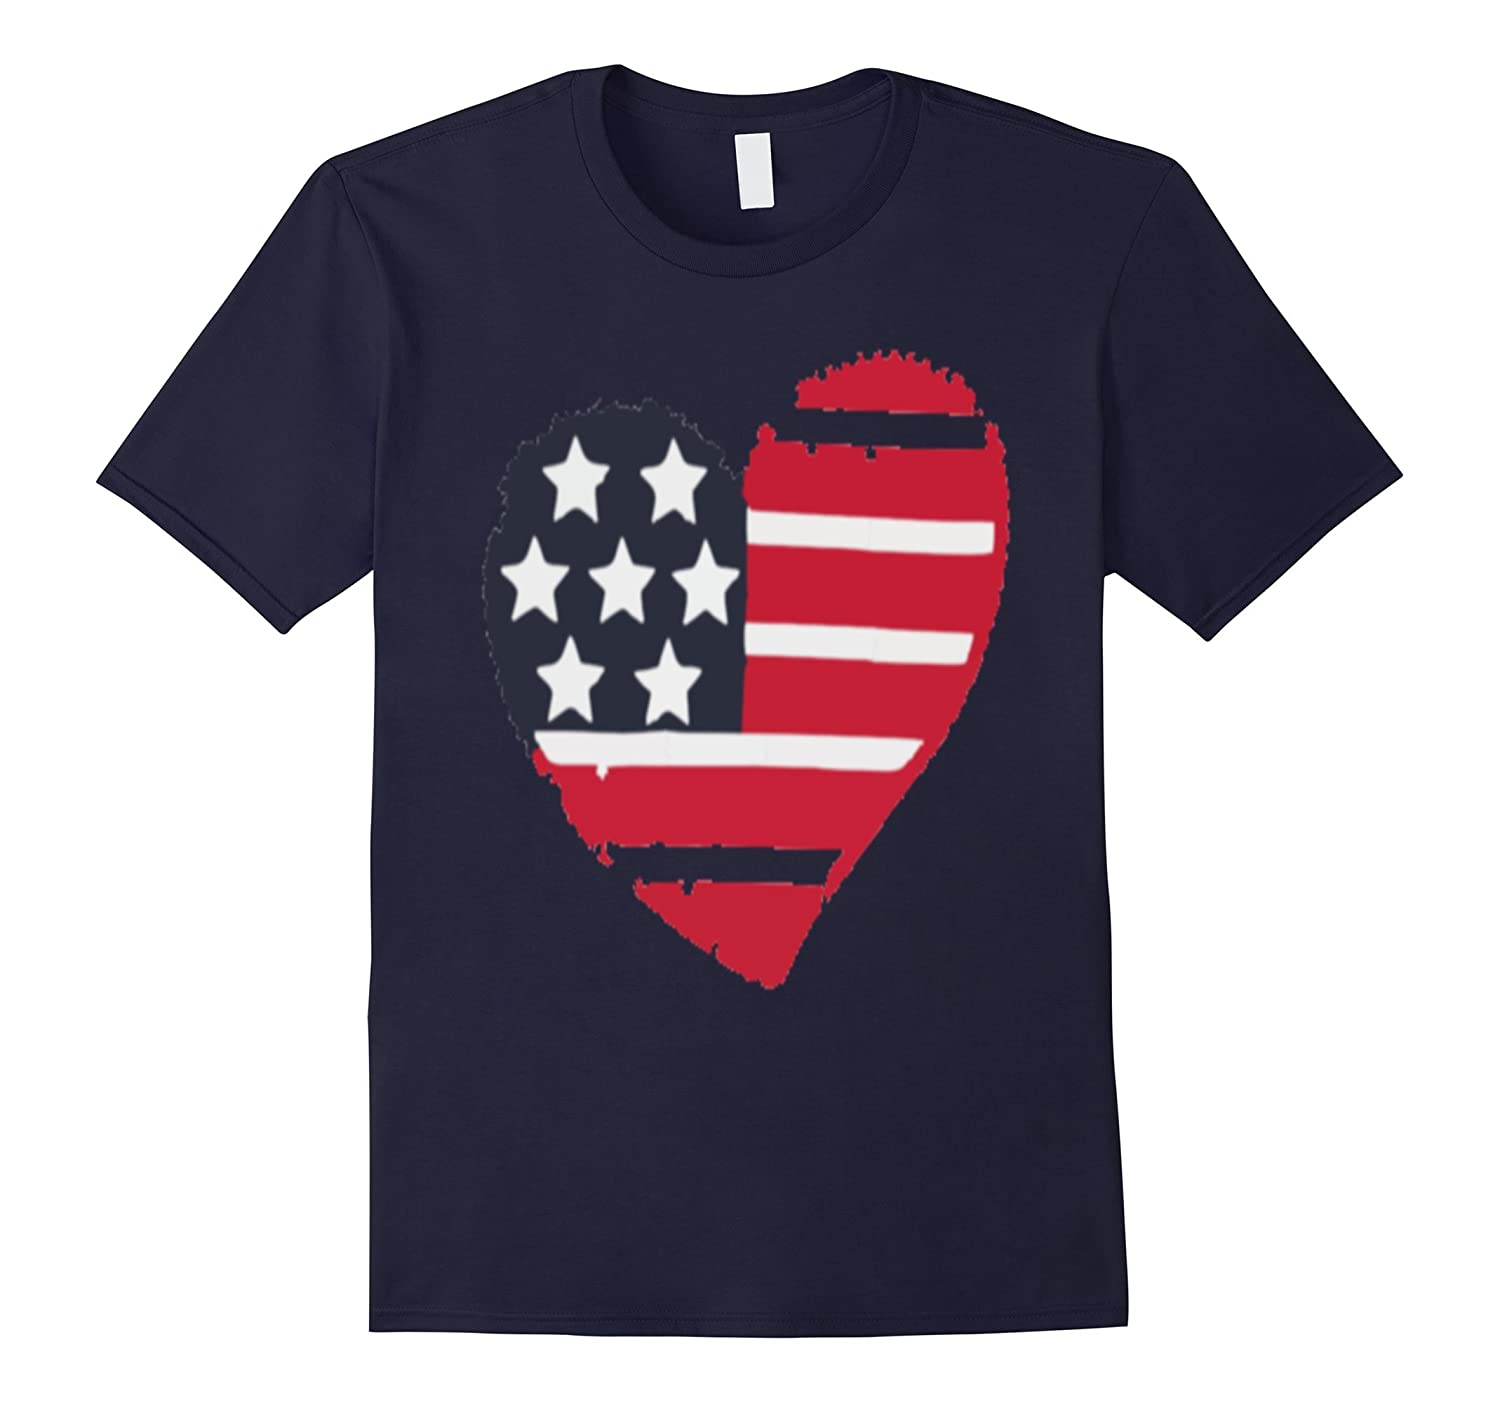 A Heart Patriotic - Classic  Fit T Tee Shirt.-BN